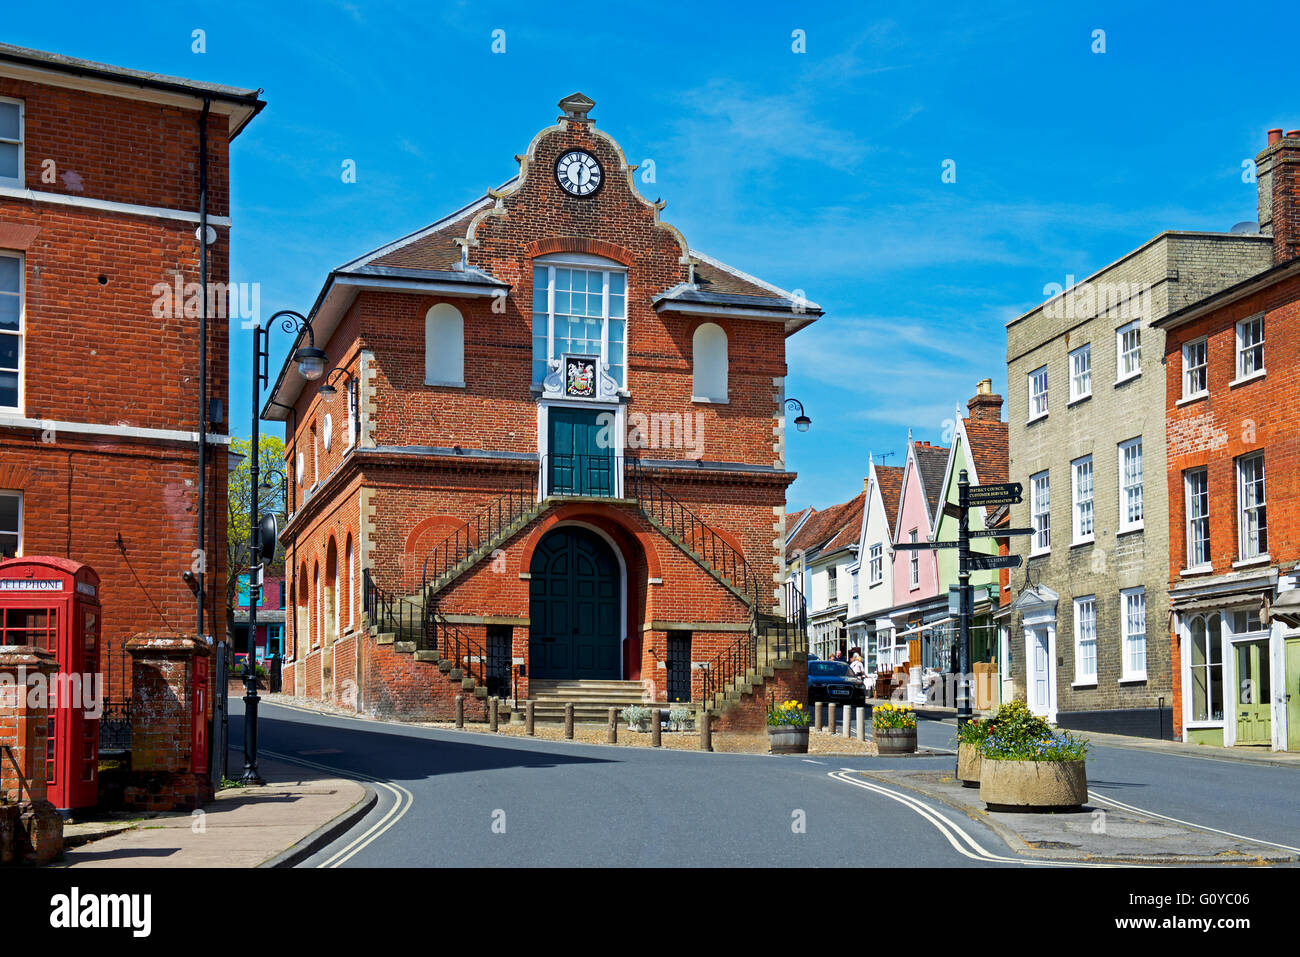 shire-hall-and-market-square-woodbridge-suffolk-england-uk-G0YC06.jpg